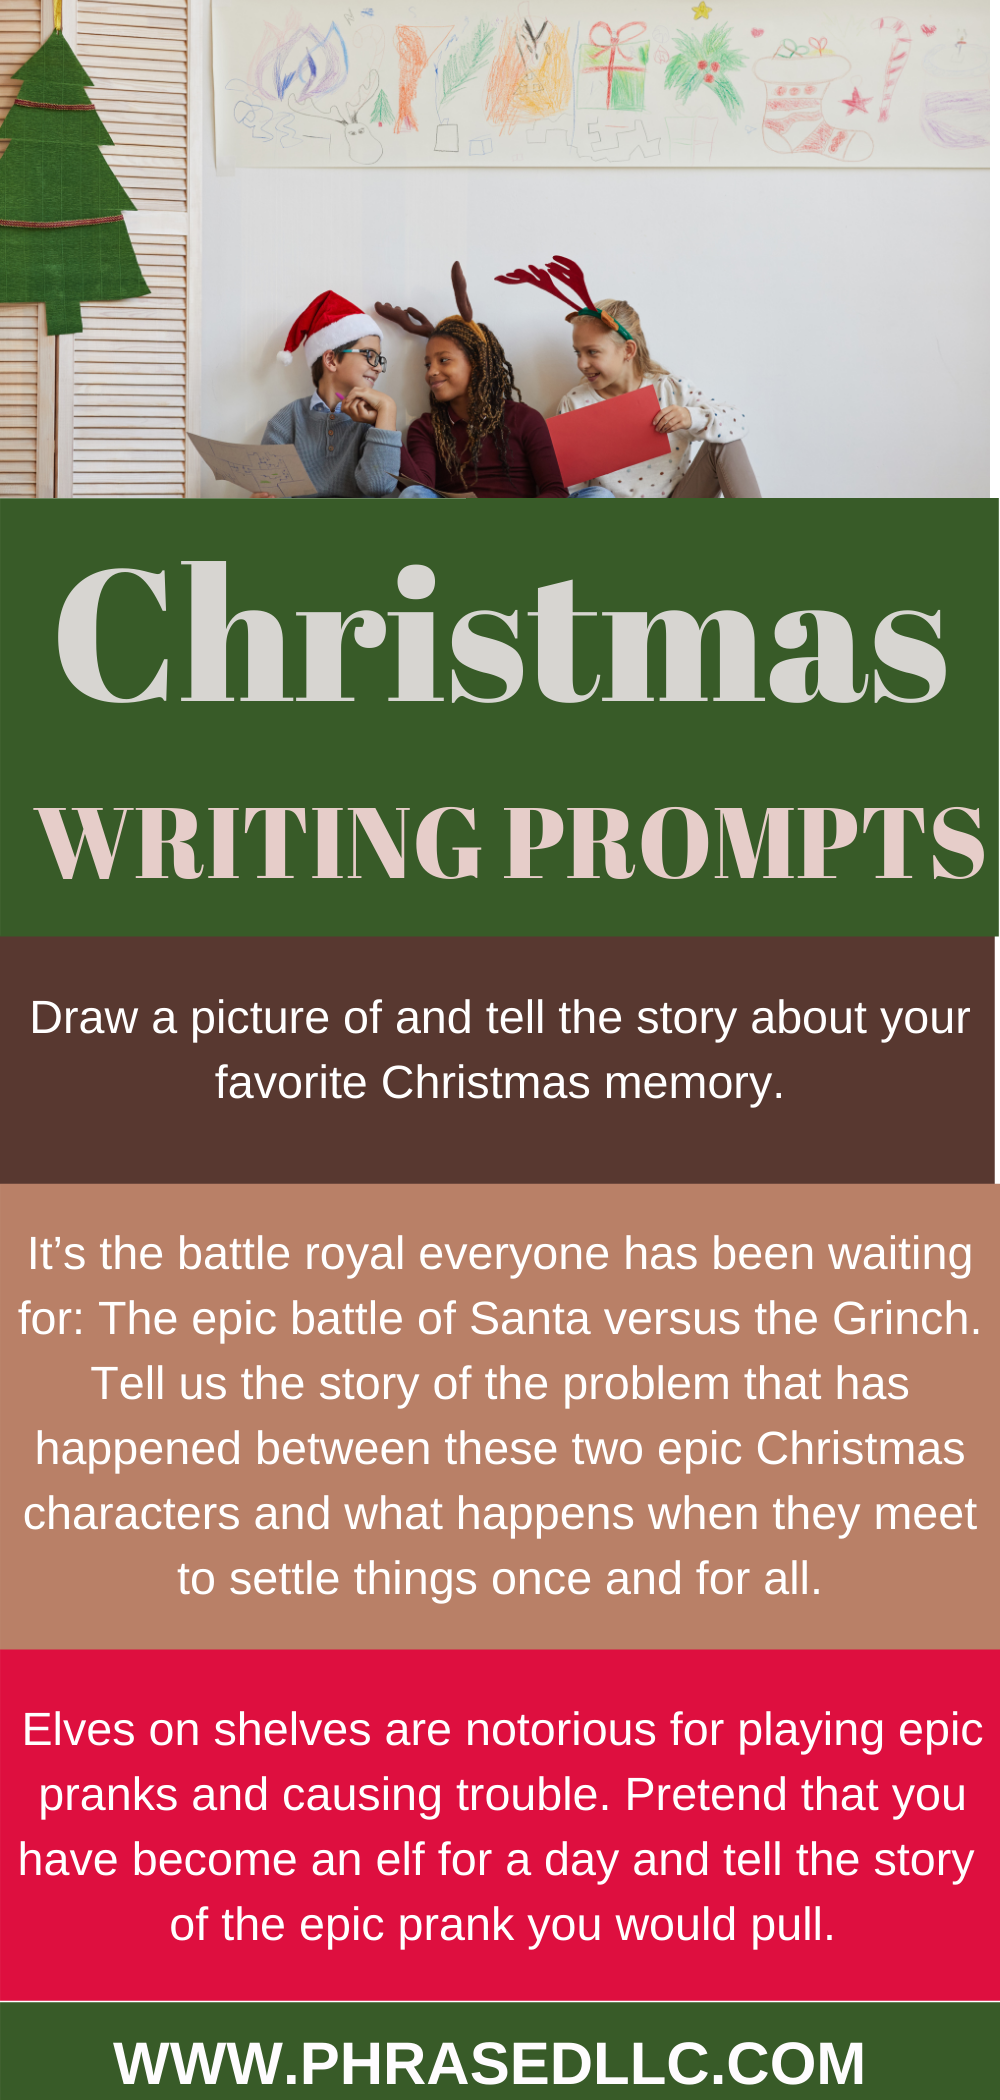 Christmas writing prompts for kids including story starters and unique ideas for kids in kindergarten, first grade and even teens.